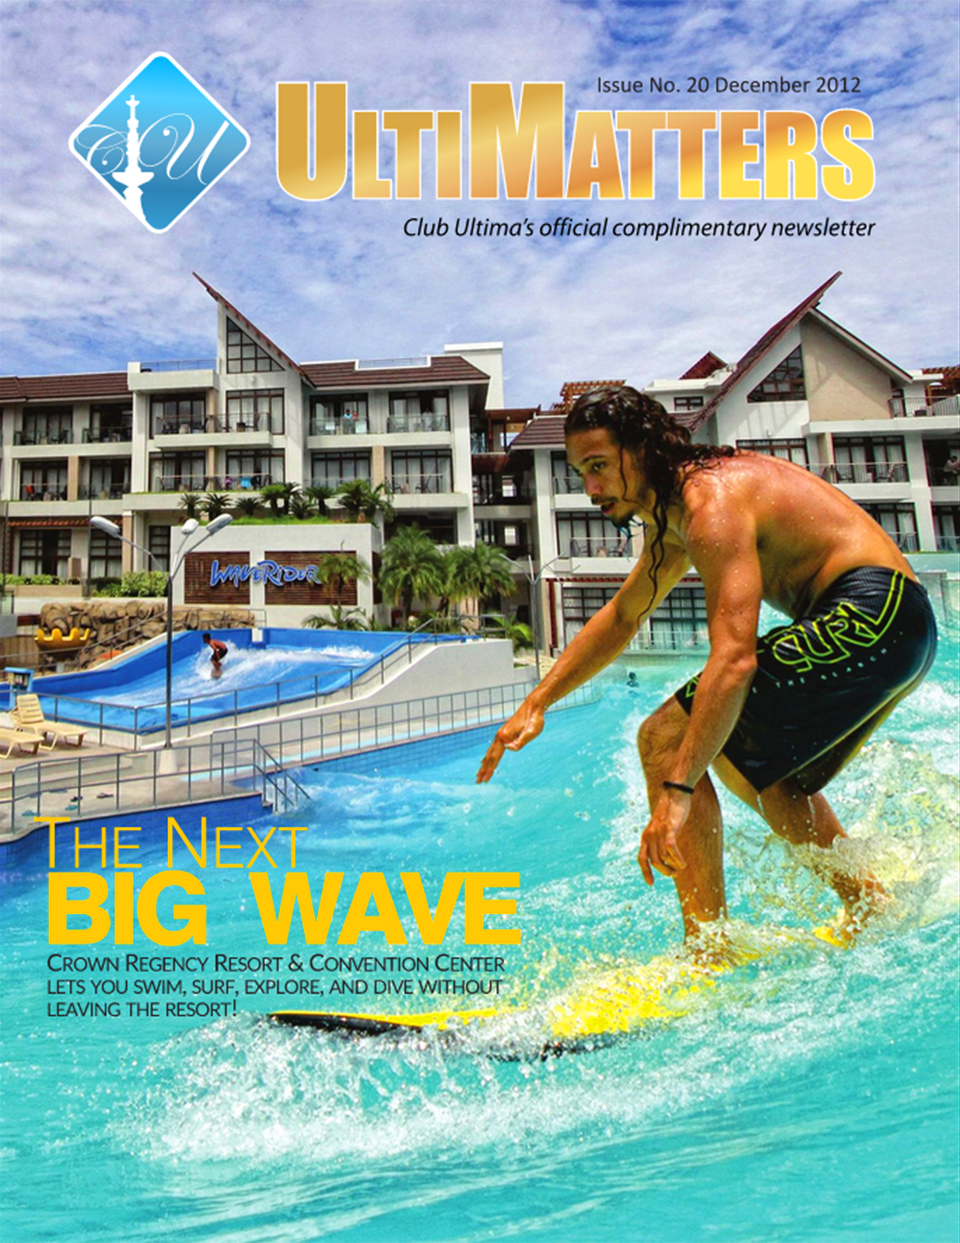 Ultimatters Issue No. 20